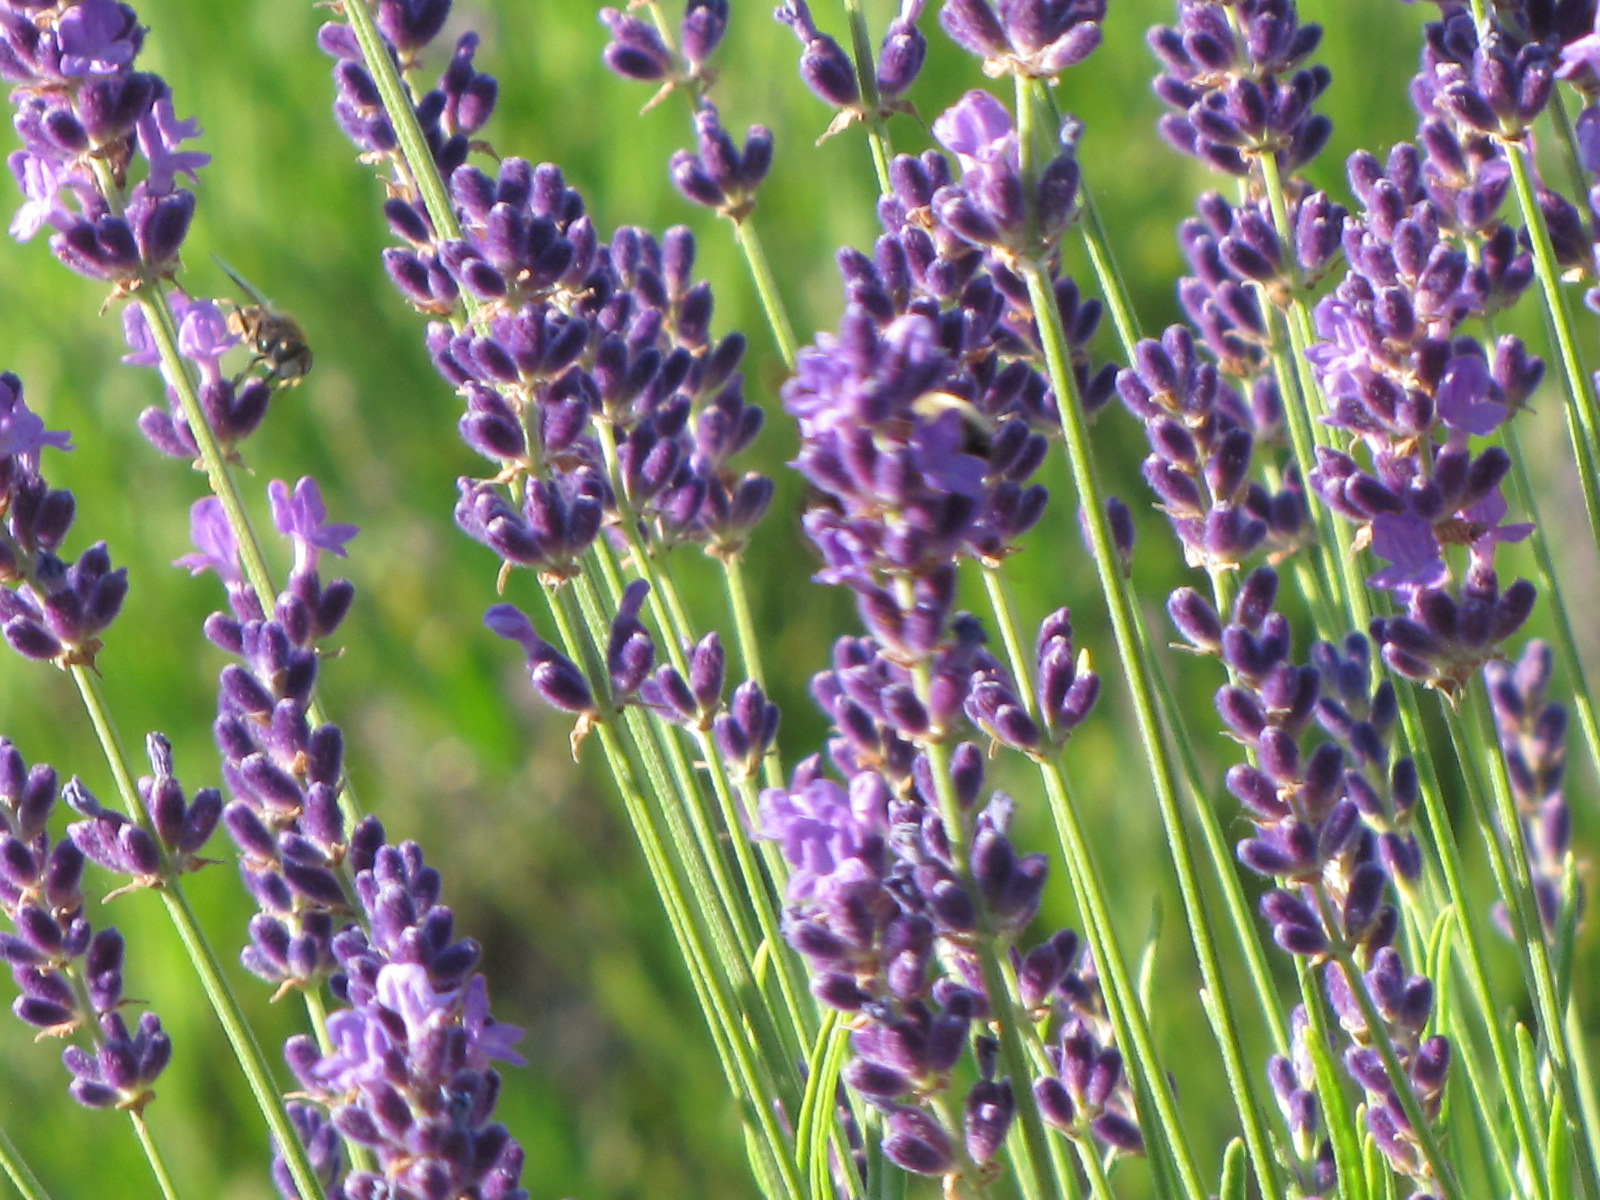 Lockwood Lavender Farm: When to pick lavender? This weekend!